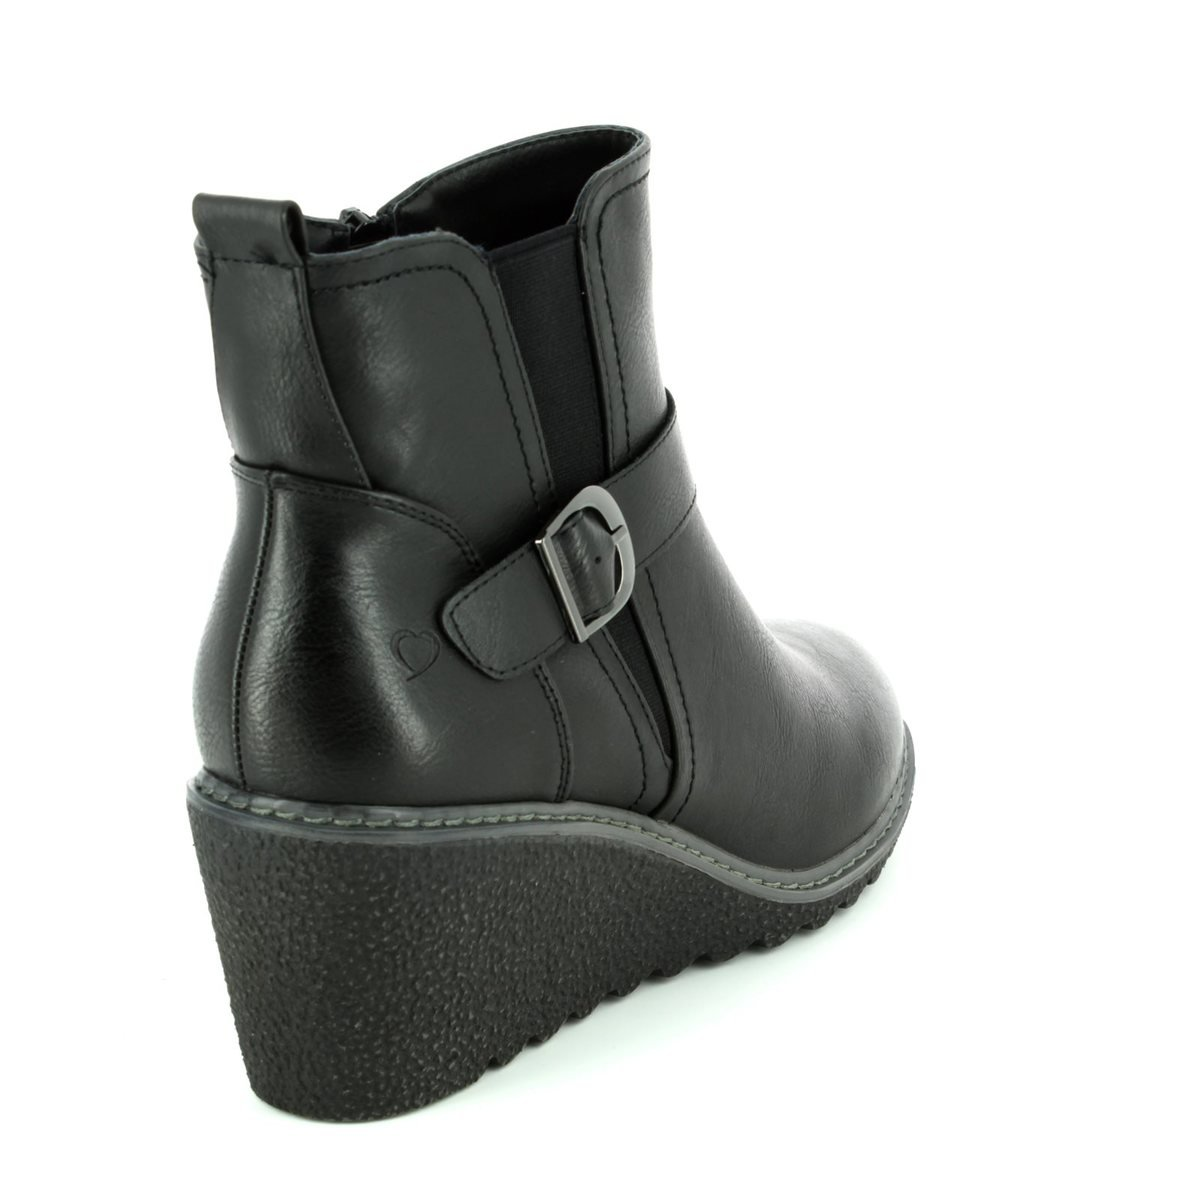 d281e4b97f52 Heavenly Feet Fleur Womens Ladies Ankle Boots Black - Black - UK Size 3   Amazon.co.uk  Shoes   Bags